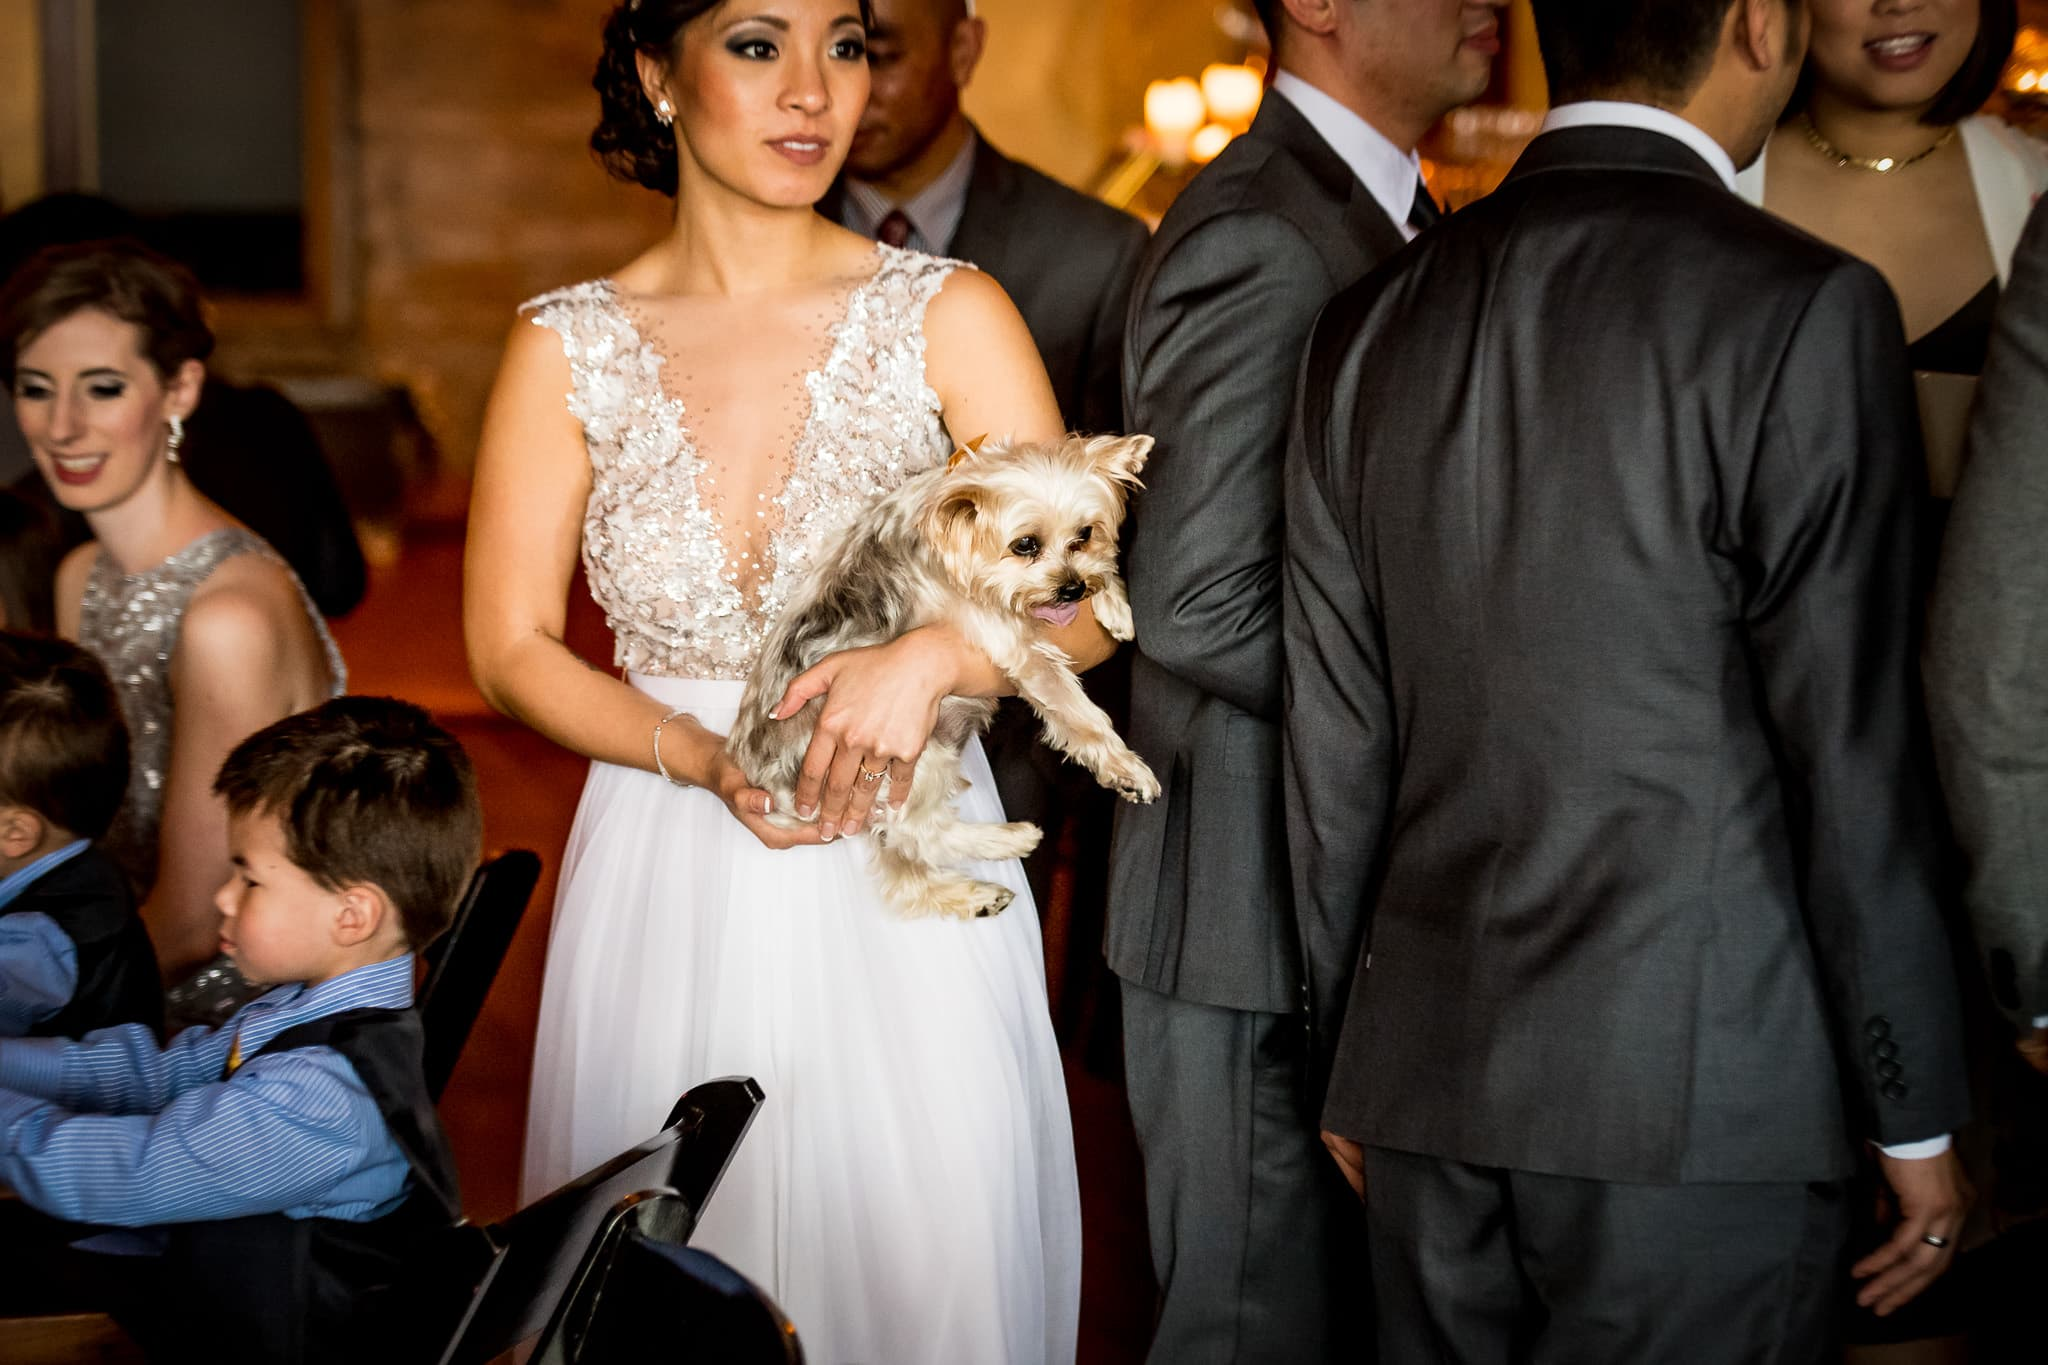 Bride with her dog during the wedding reception at Aster Cafe 1